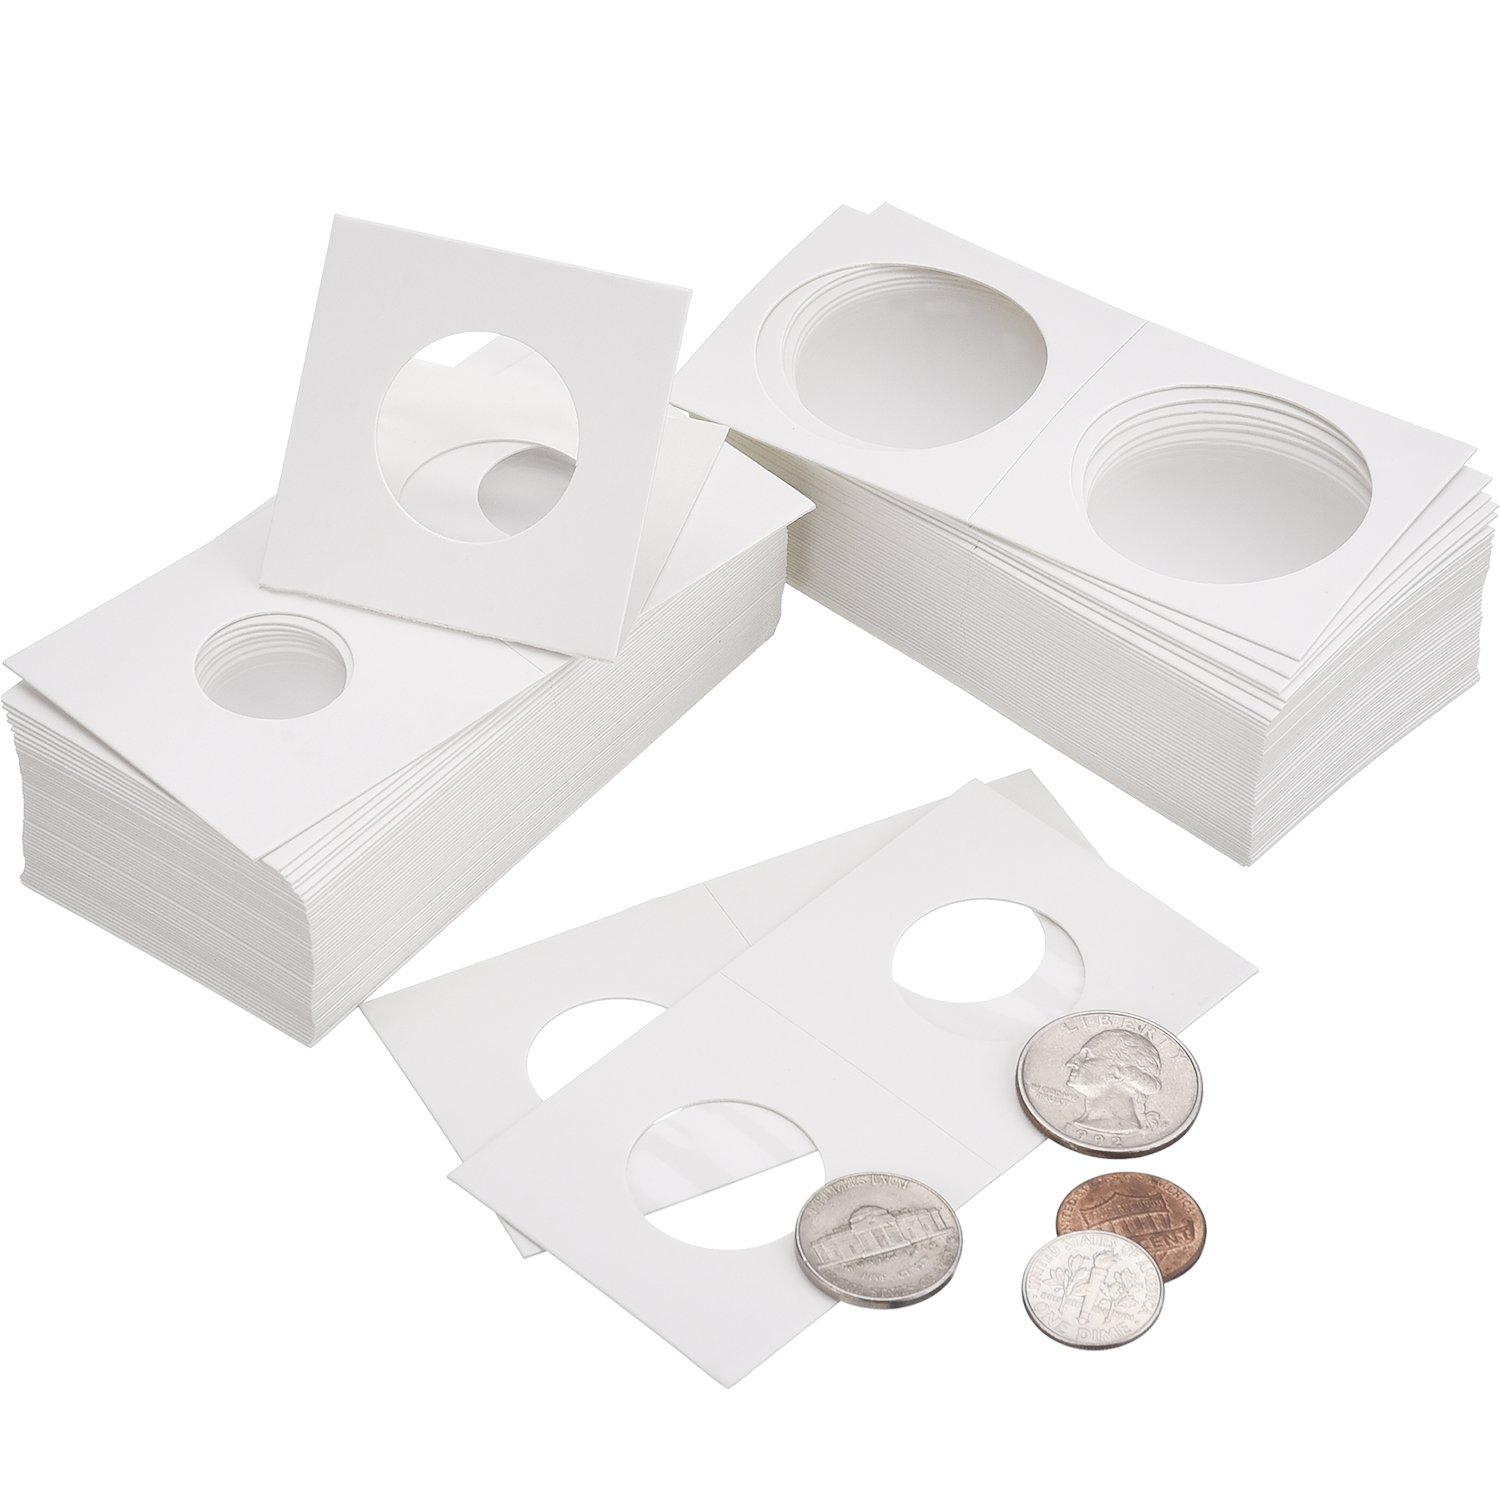 Hicarer 300 Pieces Cardboard Coin Holder Flip Mega Assortment, 2 by 2 Inch for Coin Collection Supplies (6 Sizes) by Hicarer (Image #5)